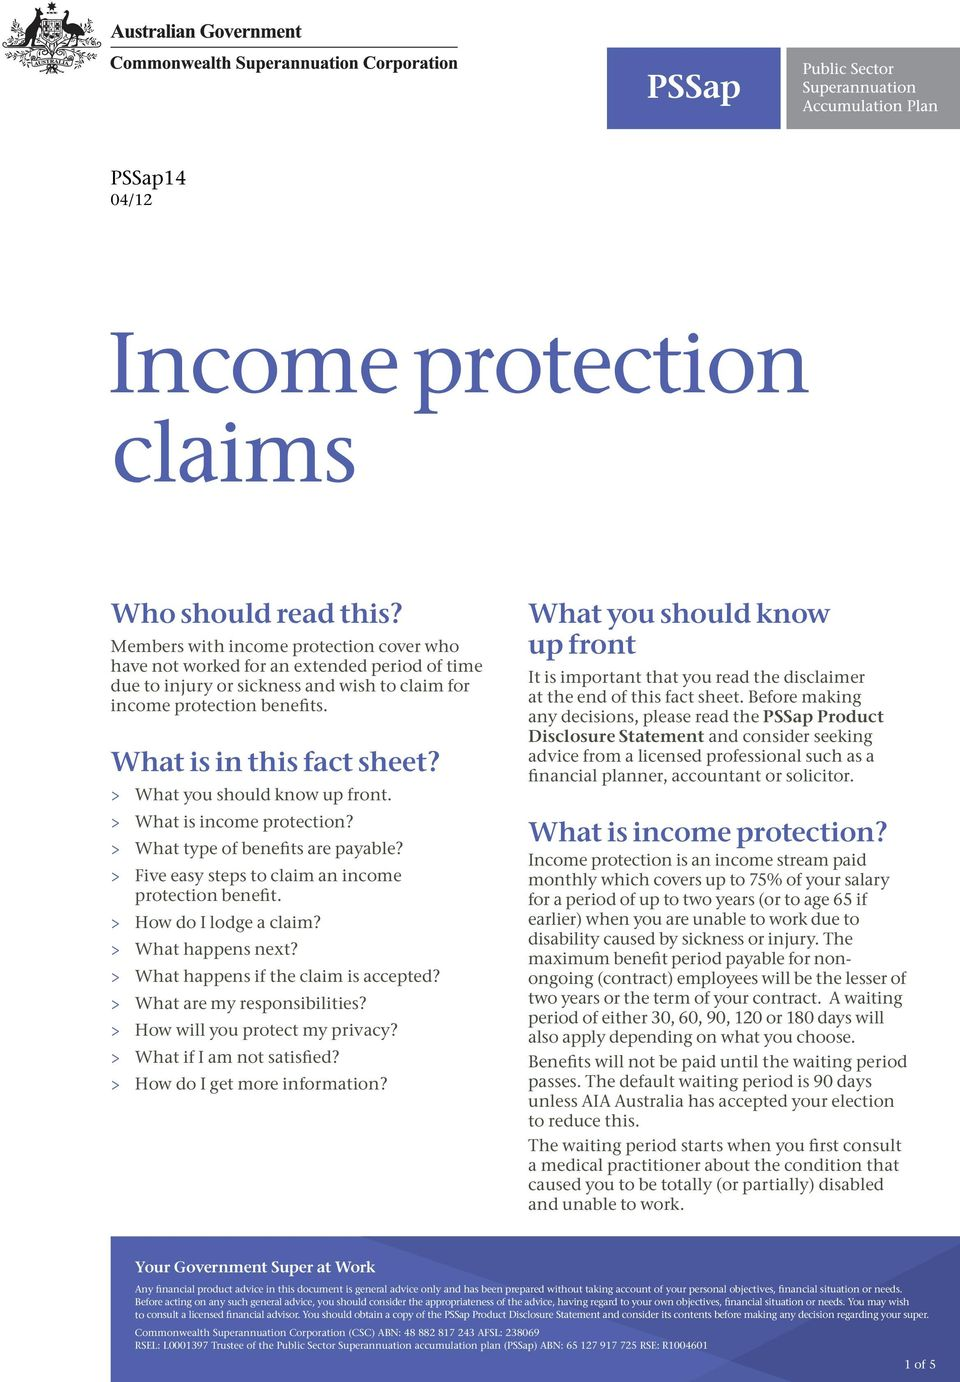 > > What you should know up front. > > What is income protection? > > What type of benefits are payable? > > Five easy steps to claim an income protection benefit. > > How do I lodge a claim?